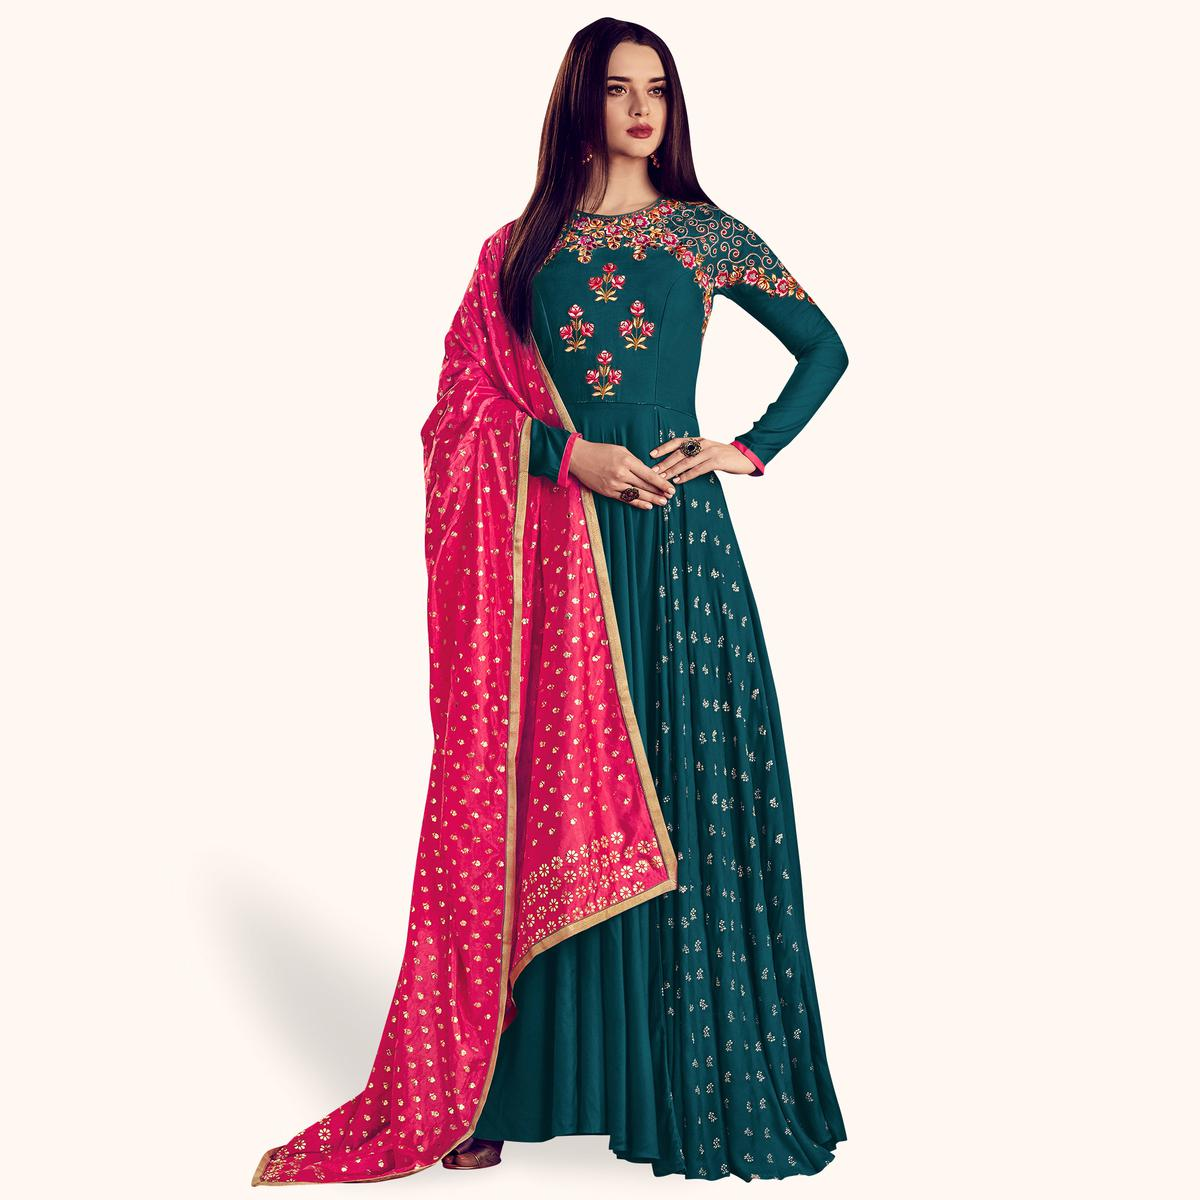 Amazing Teal Green Colored Party Wear Embroidered Rayon Anarkali Suit